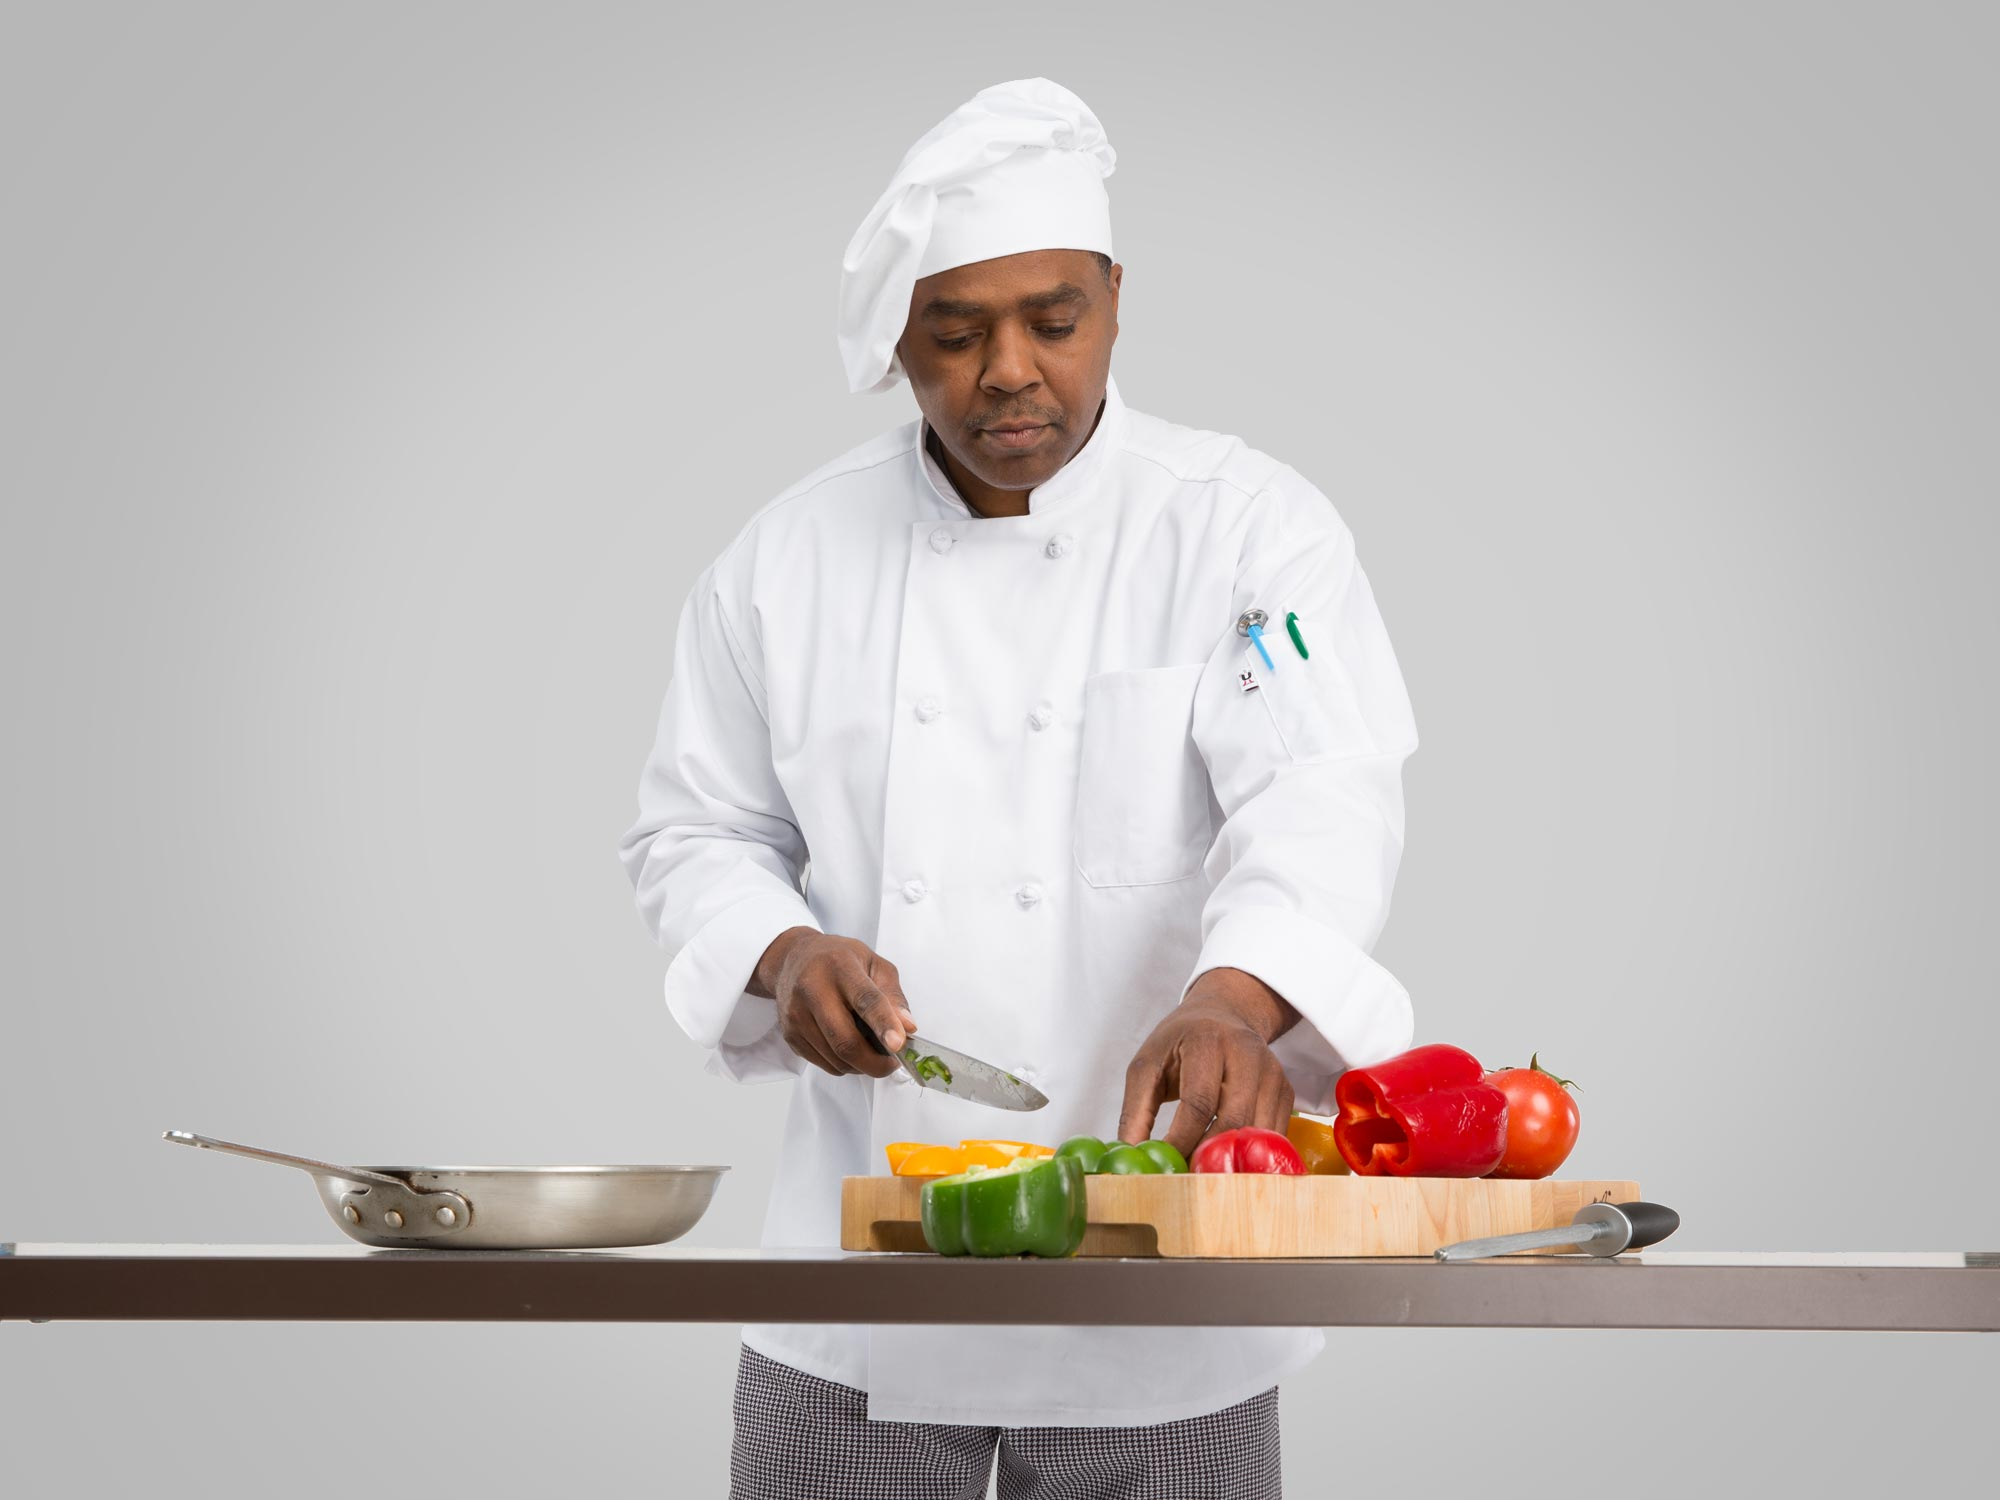 Male chef slicing vegetables